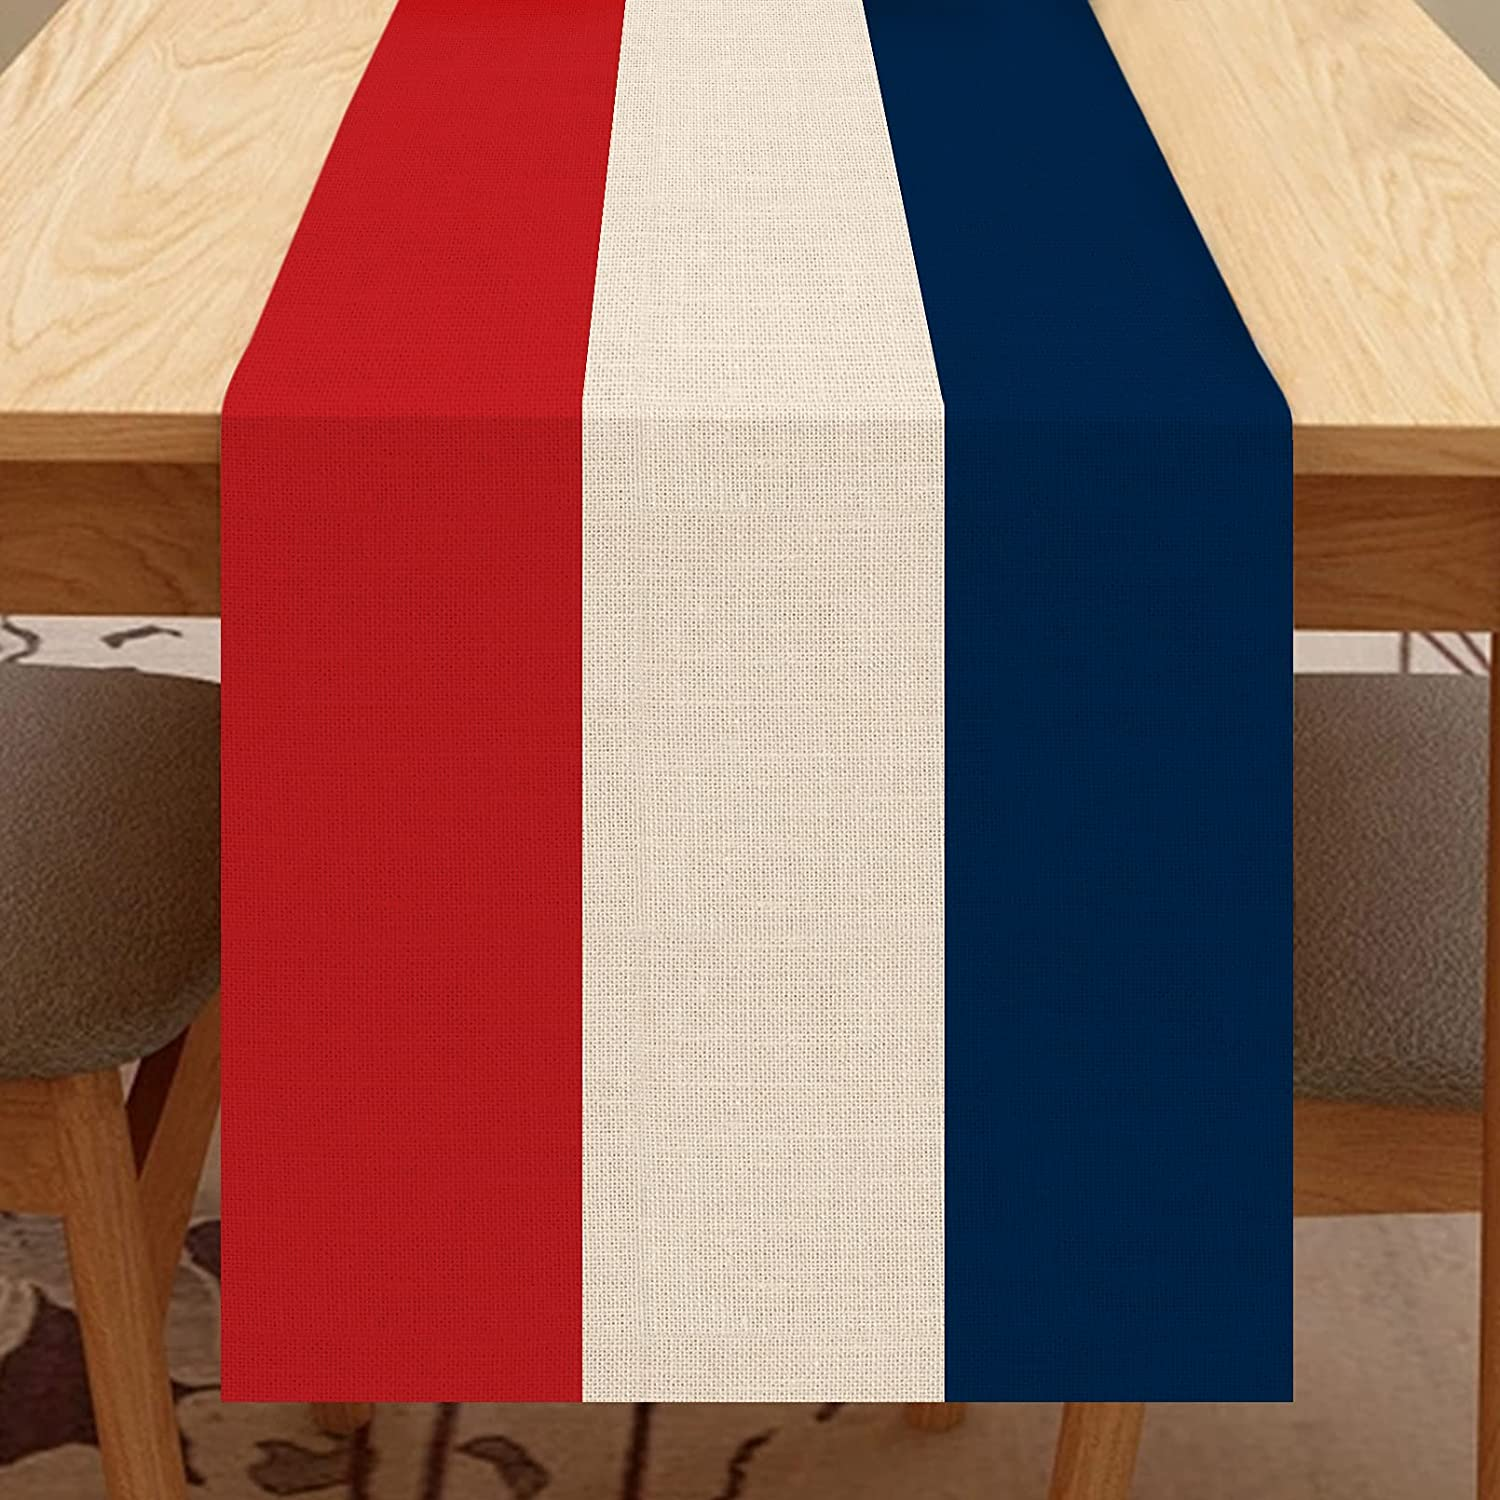 Seliem Red White Blue American Table Runner, Patriotic Table Scarf Home Kitchen July 4th USA Decor Sign, Summer Memorial Day Farmhouse Dining Decorations Independence Day Party Supplies 13 X 72 Inch